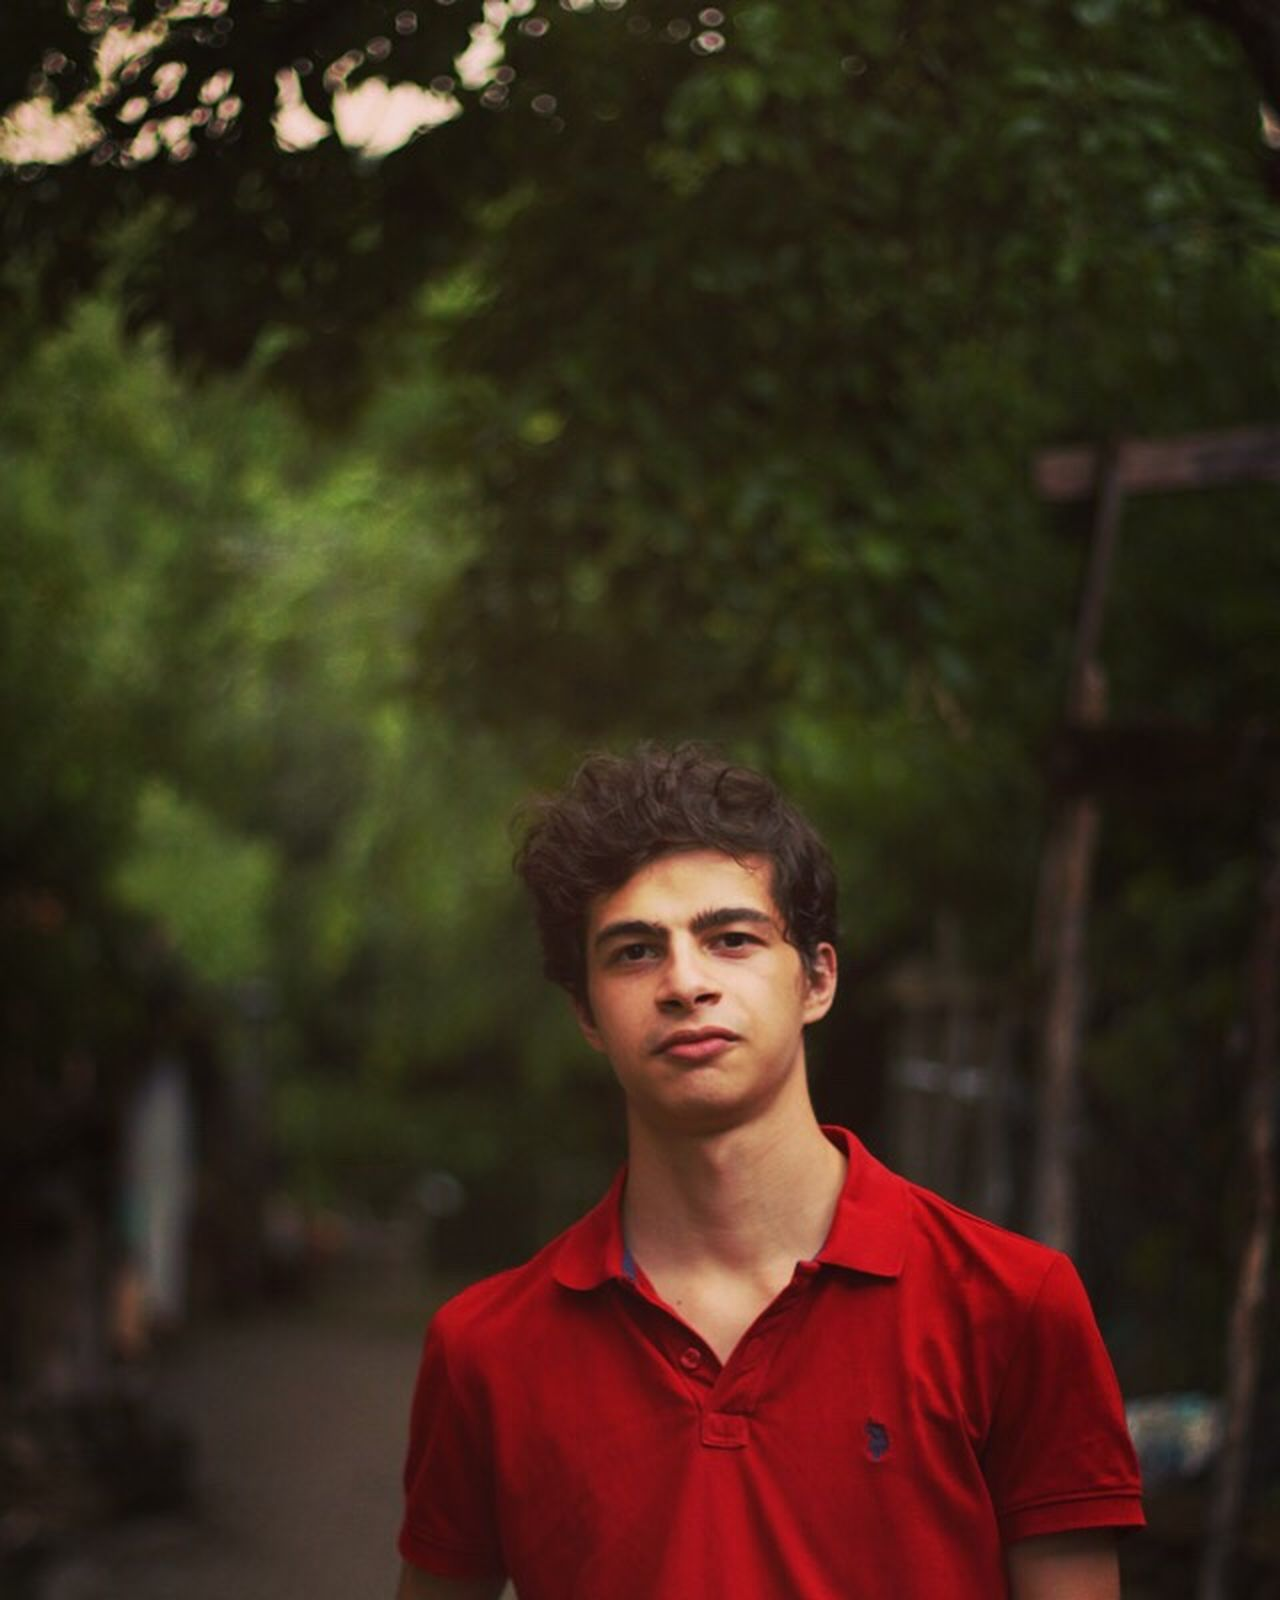 EyeEm Selects EyeEmNewHere Young Adult Real People Tree One Person Young Men Outdoors Front View Casual Clothing Focus On Foreground Day Lifestyles One Young Man Only Portrait Nature People